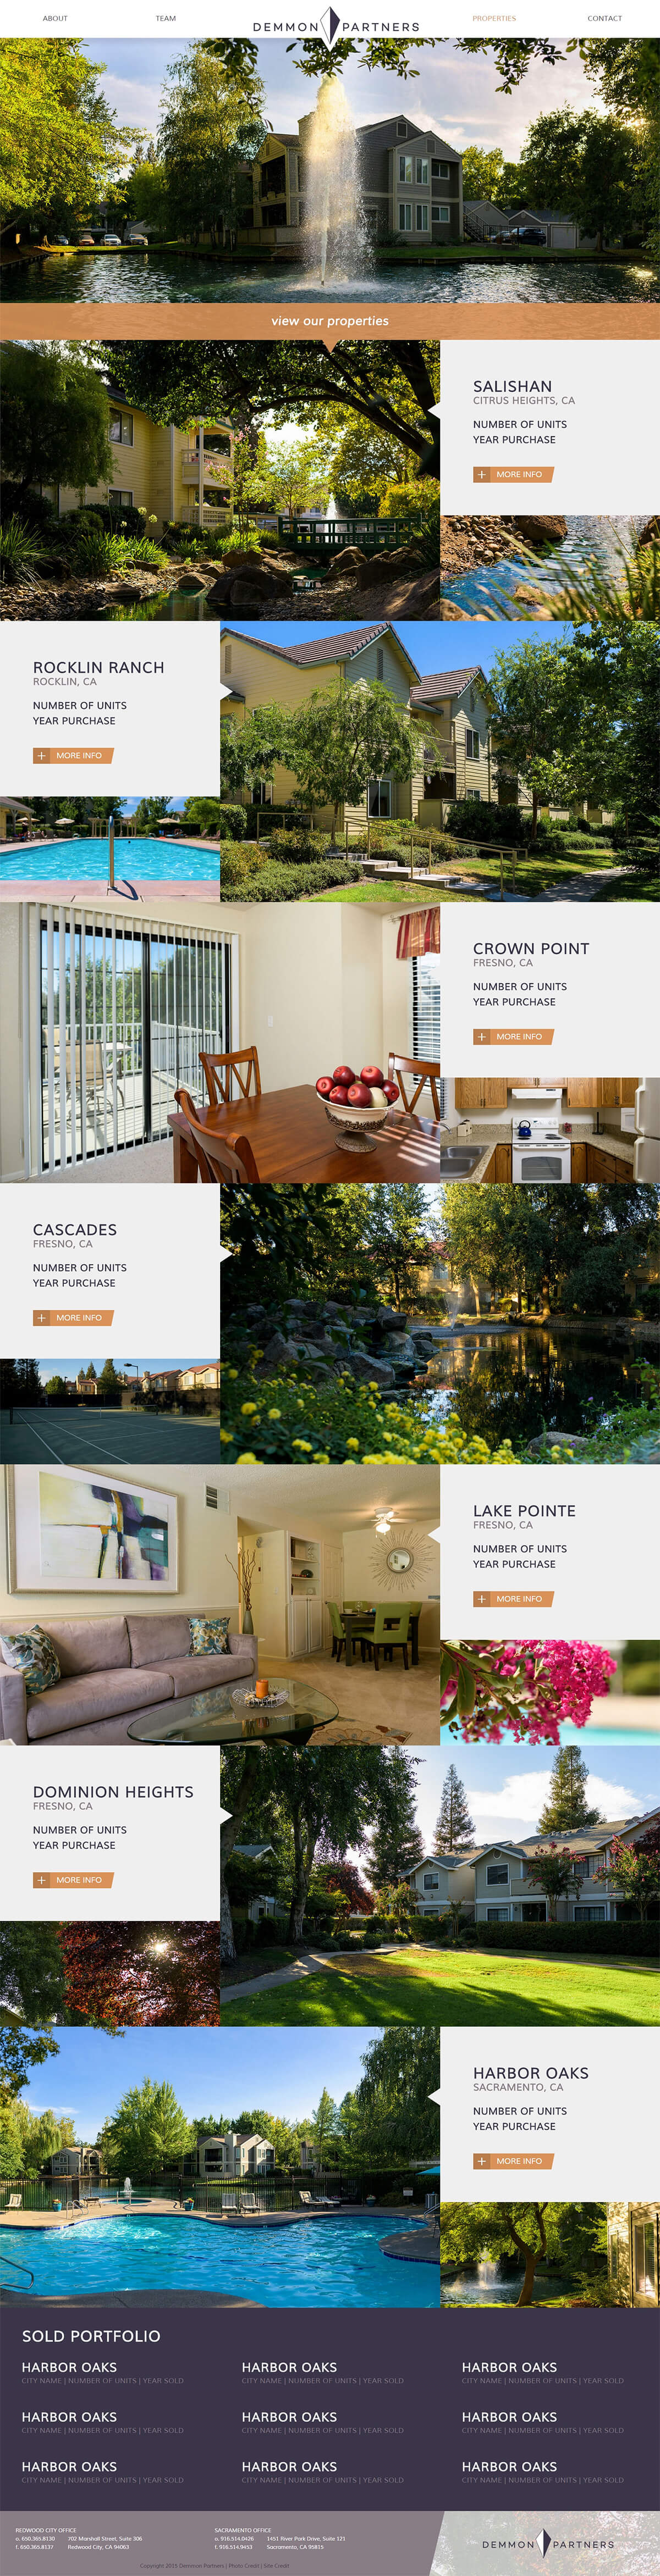 Demmon Partners Properties Page